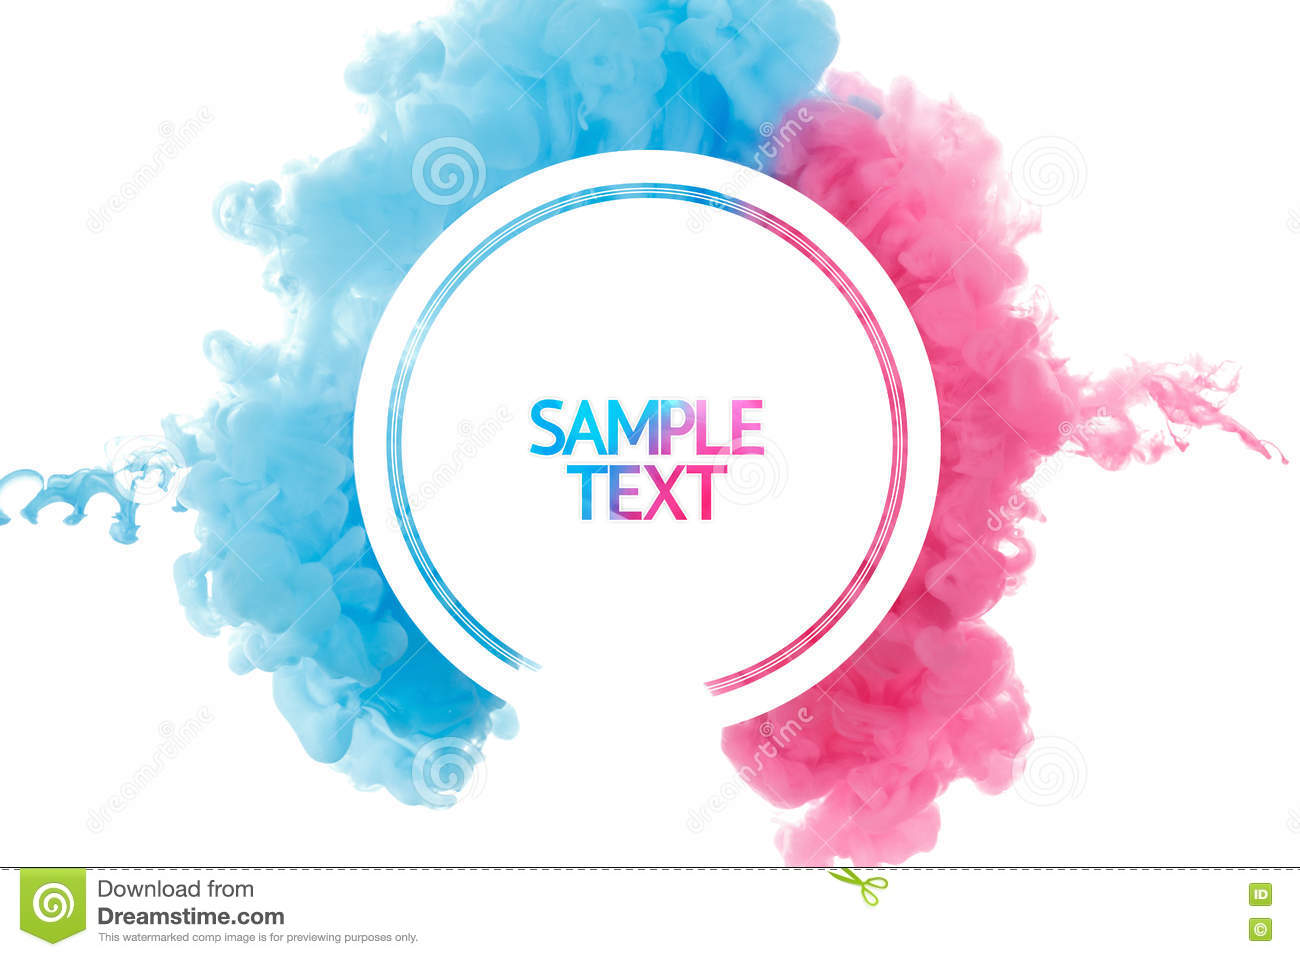 liquid template filters - color paint splash background liquid cloud ink abstract